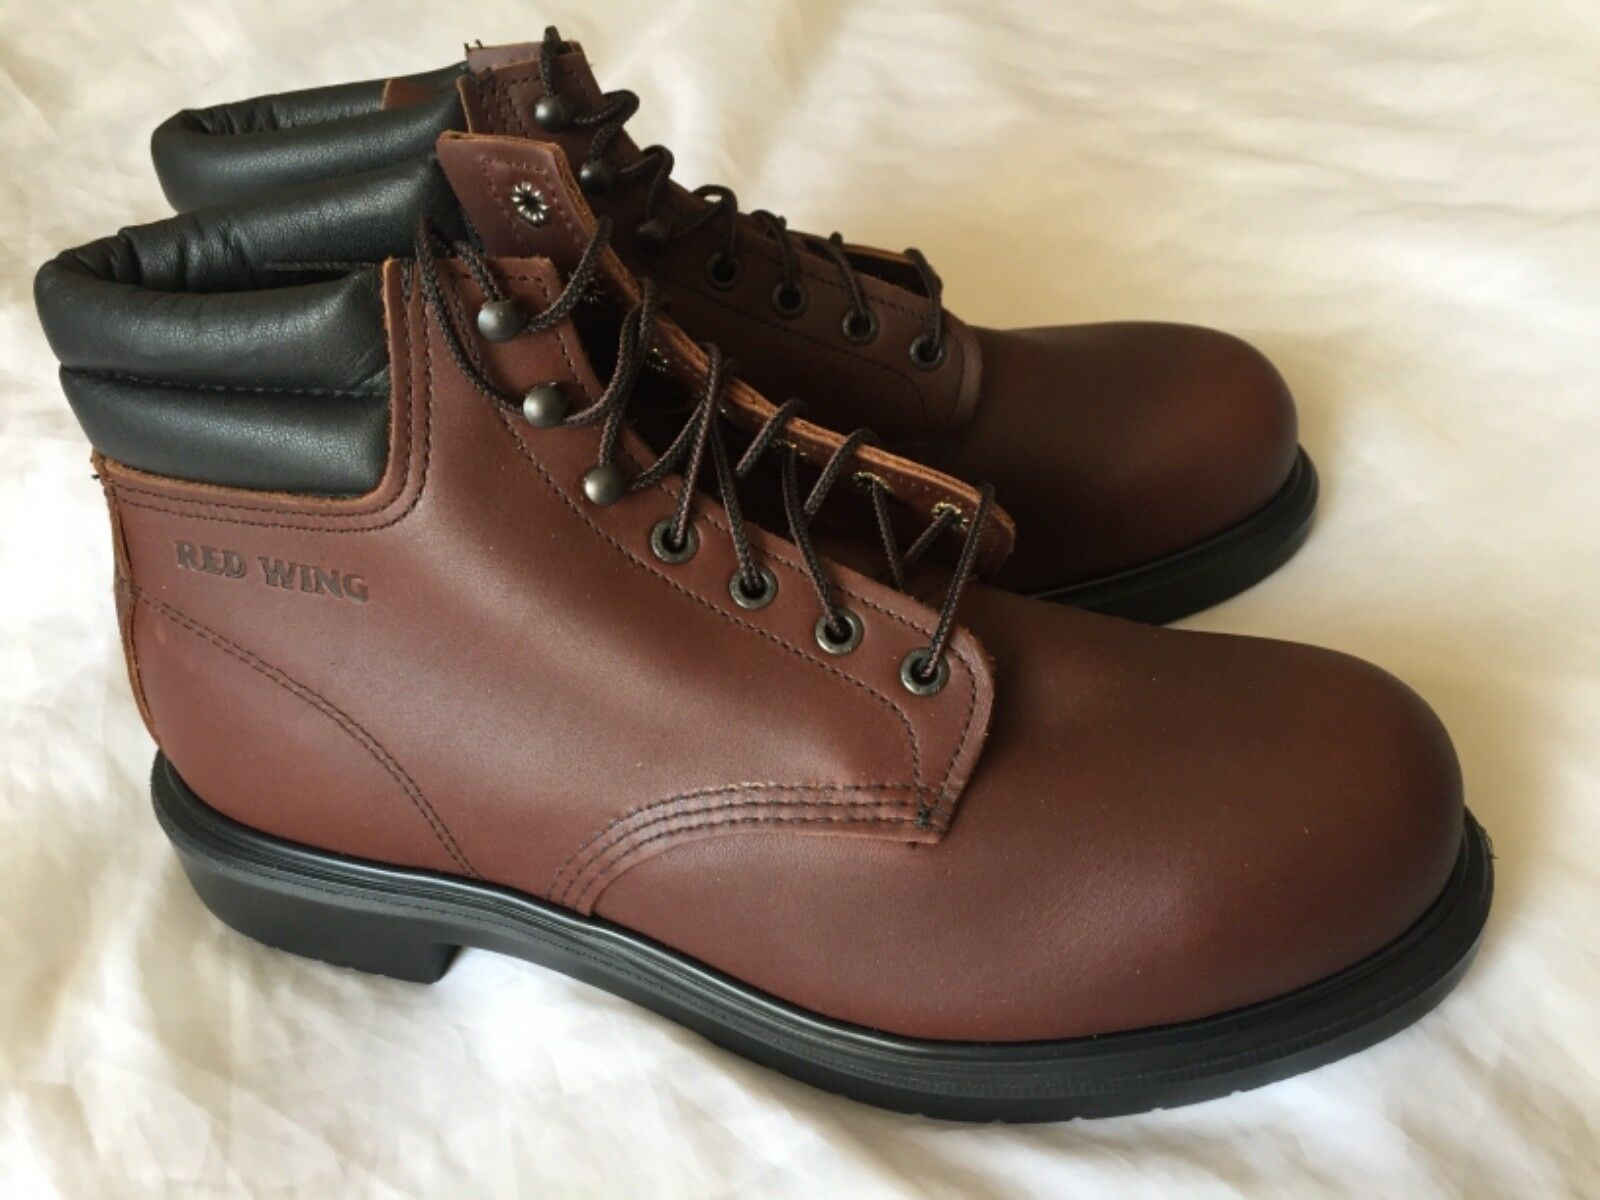 Red Wing 2245 Safety Boots Steel toe  Made in USA Brand New Size 13 E